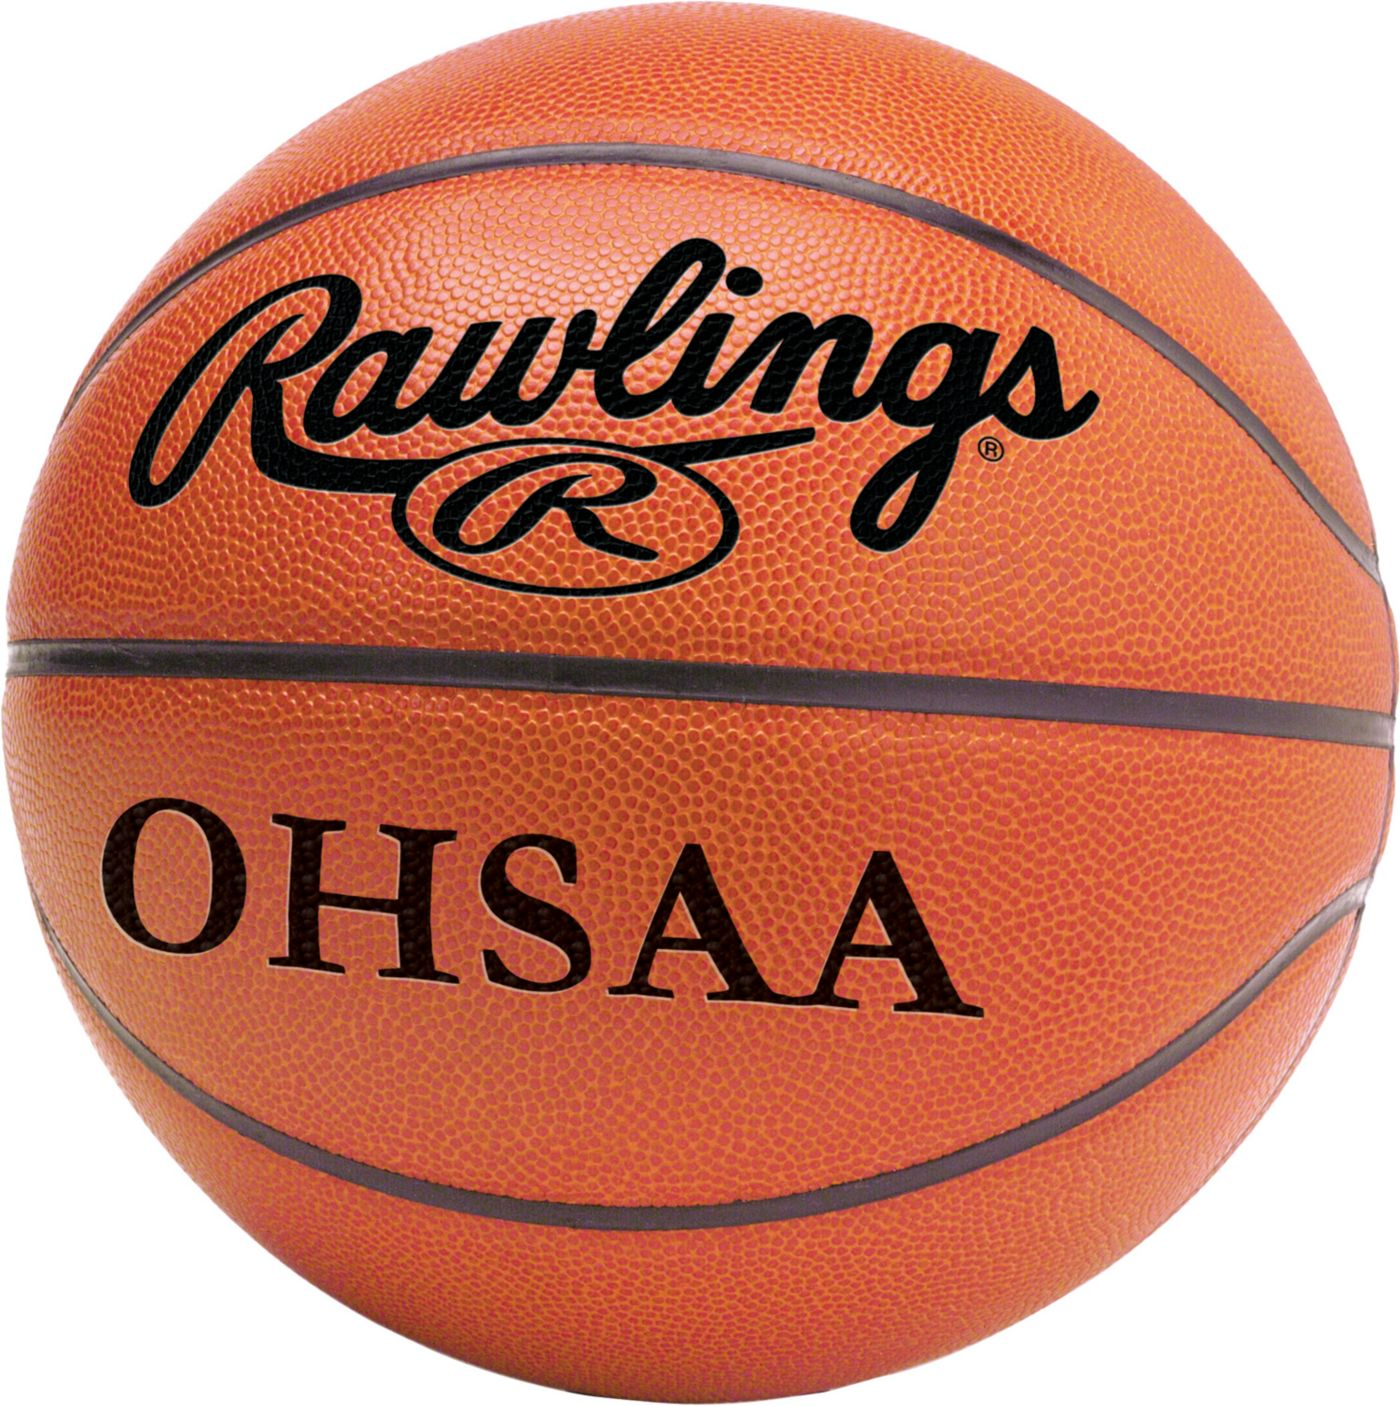 """Rawlings Ohio Official Game Basketball (29.5"""")"""